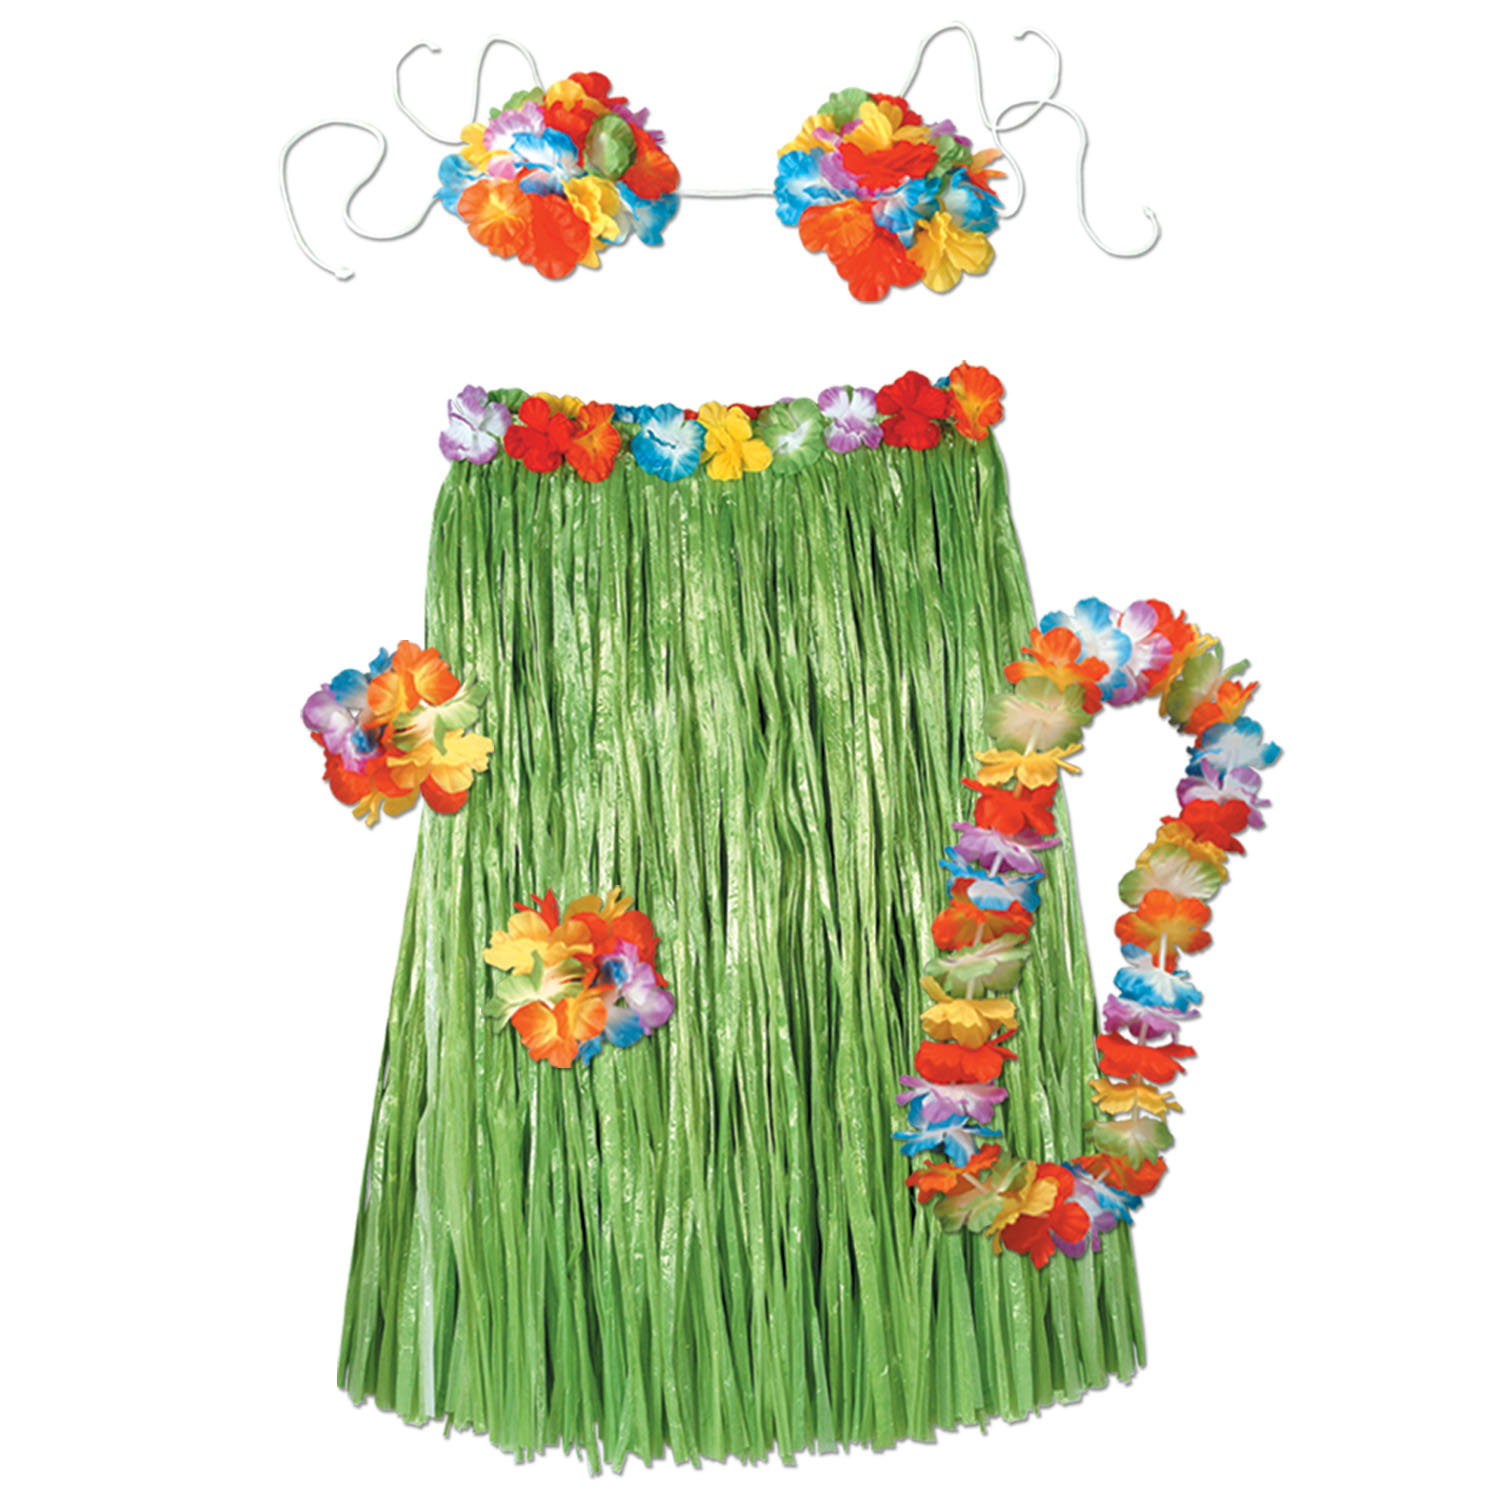 Adult Hula Set - 5 pcs (Pack of 6) Adult Hula Set, party favor, luau, new years eve, wholesale, inexpensive, bulk